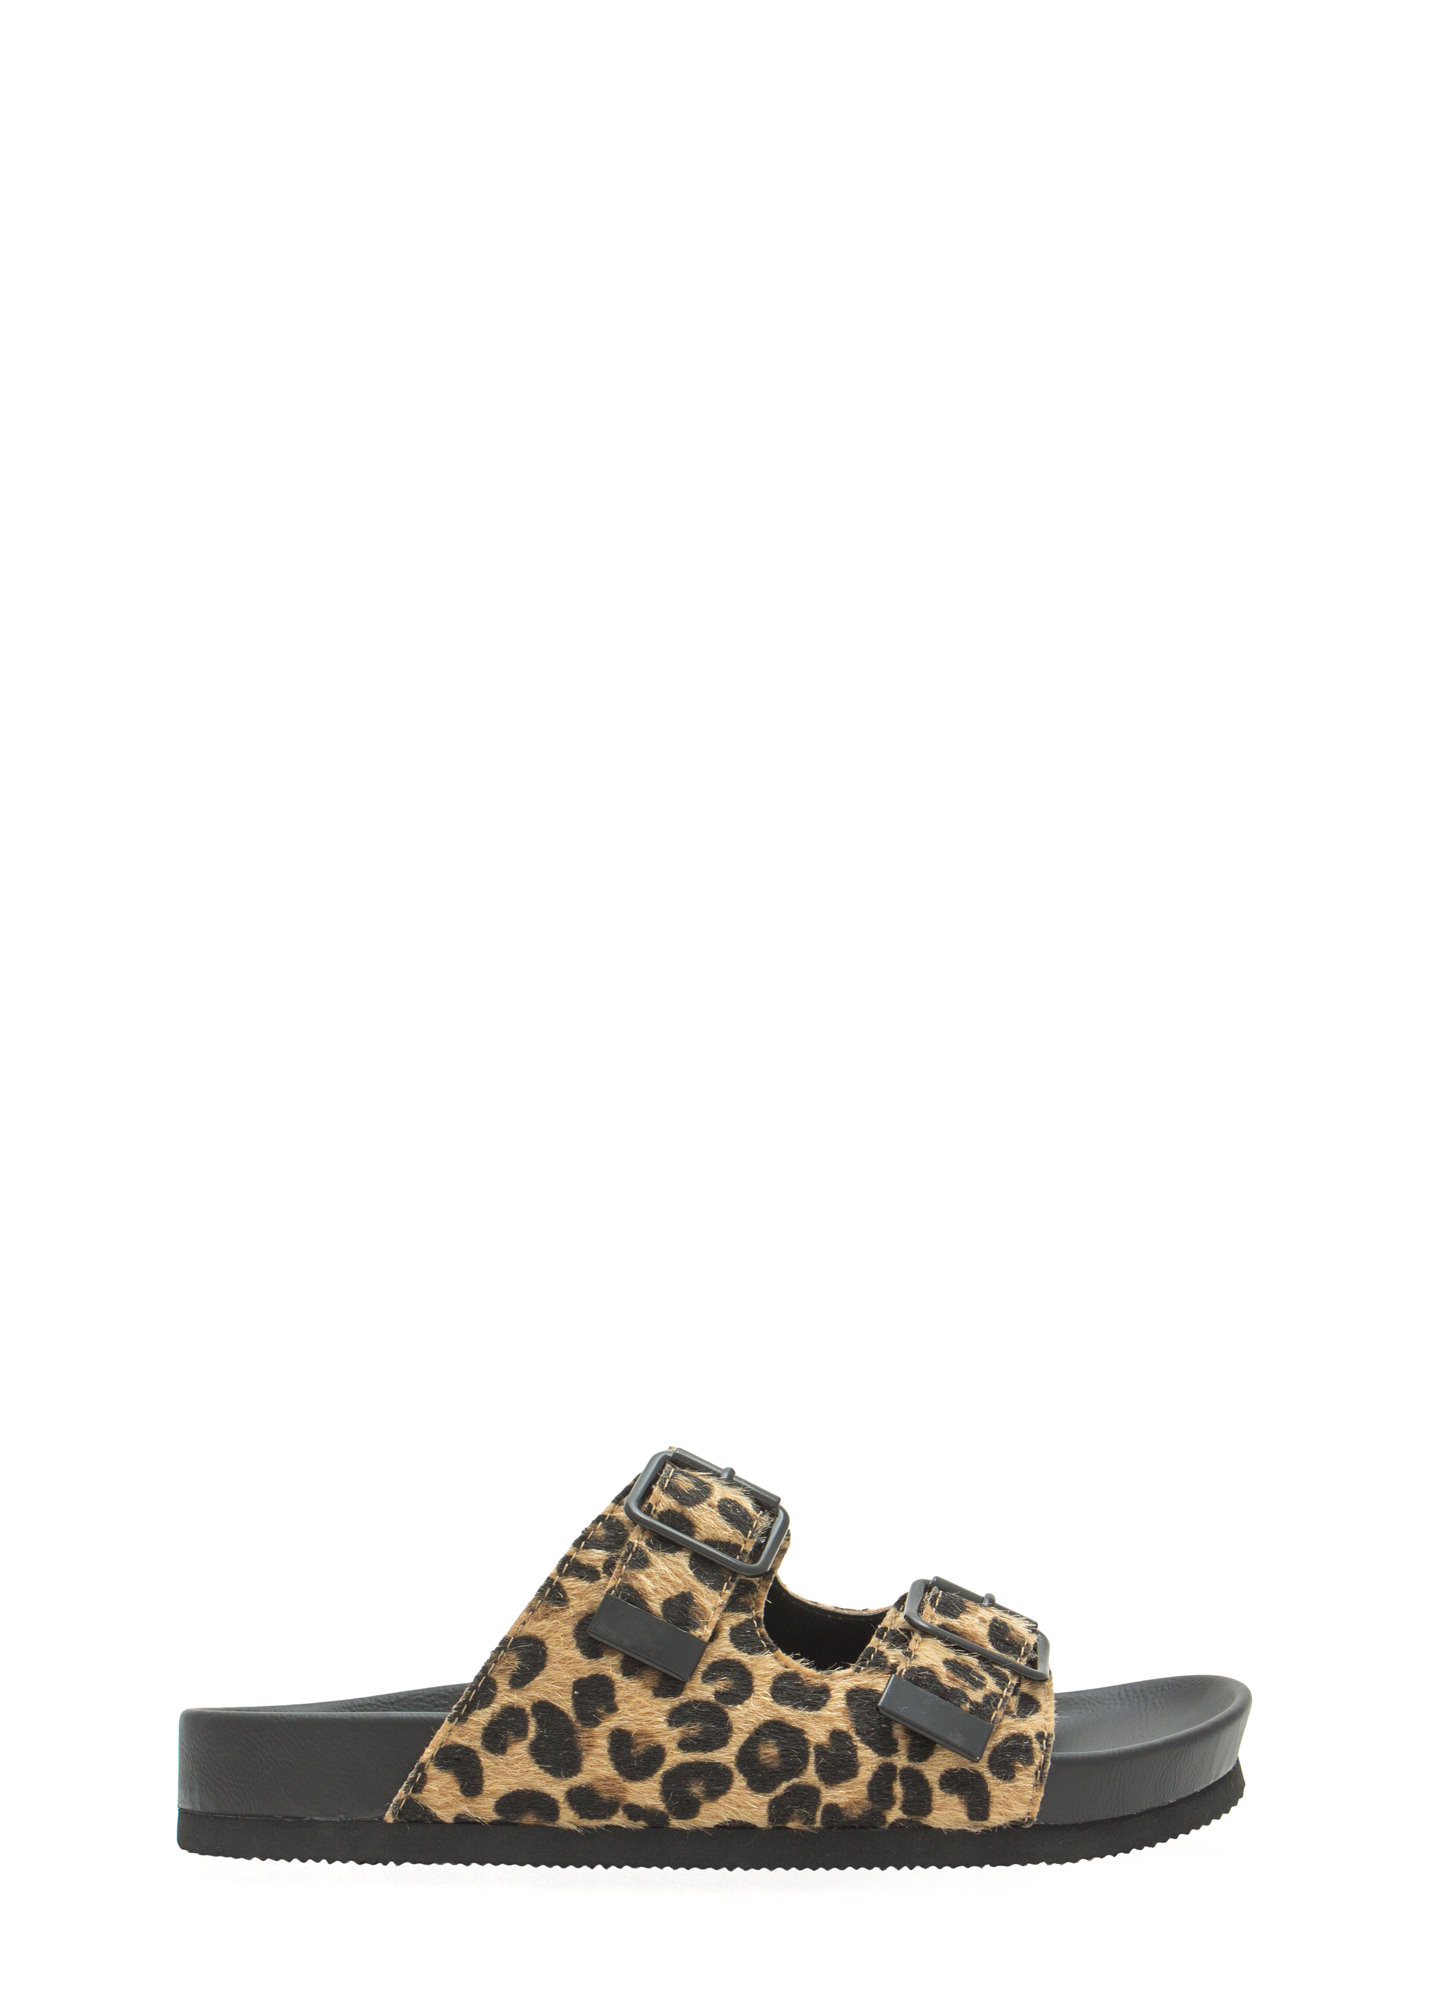 Not So Granola Slide Sandals TANLEOPARD